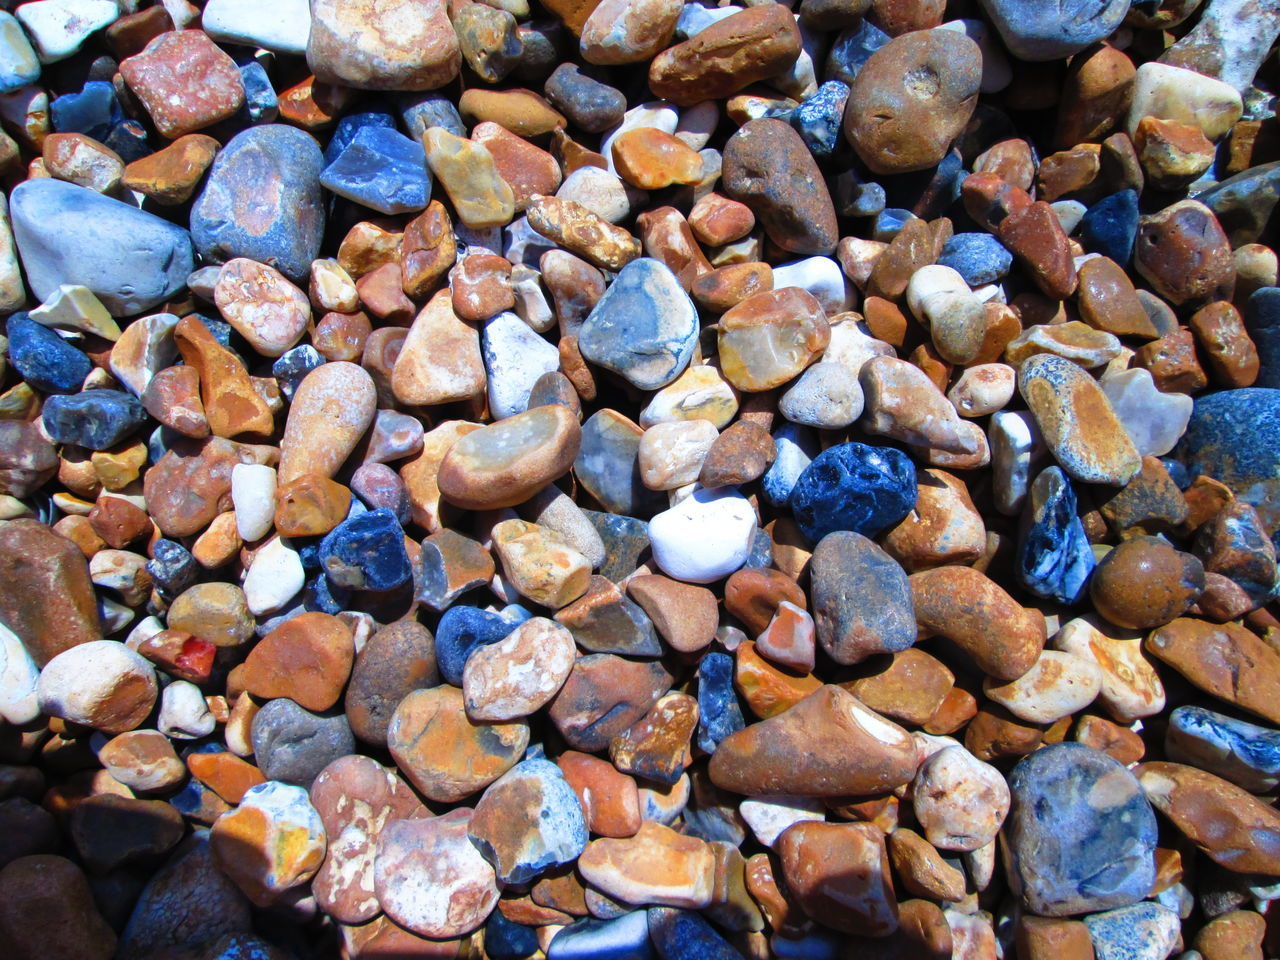 Abundance Backgrounds Day Full Frame Large Group Of Objects Nature No People Outdoors Pebble Pebble Beach Pebbles Pebbles And Stones Pebbles On A Beach Stone Stones